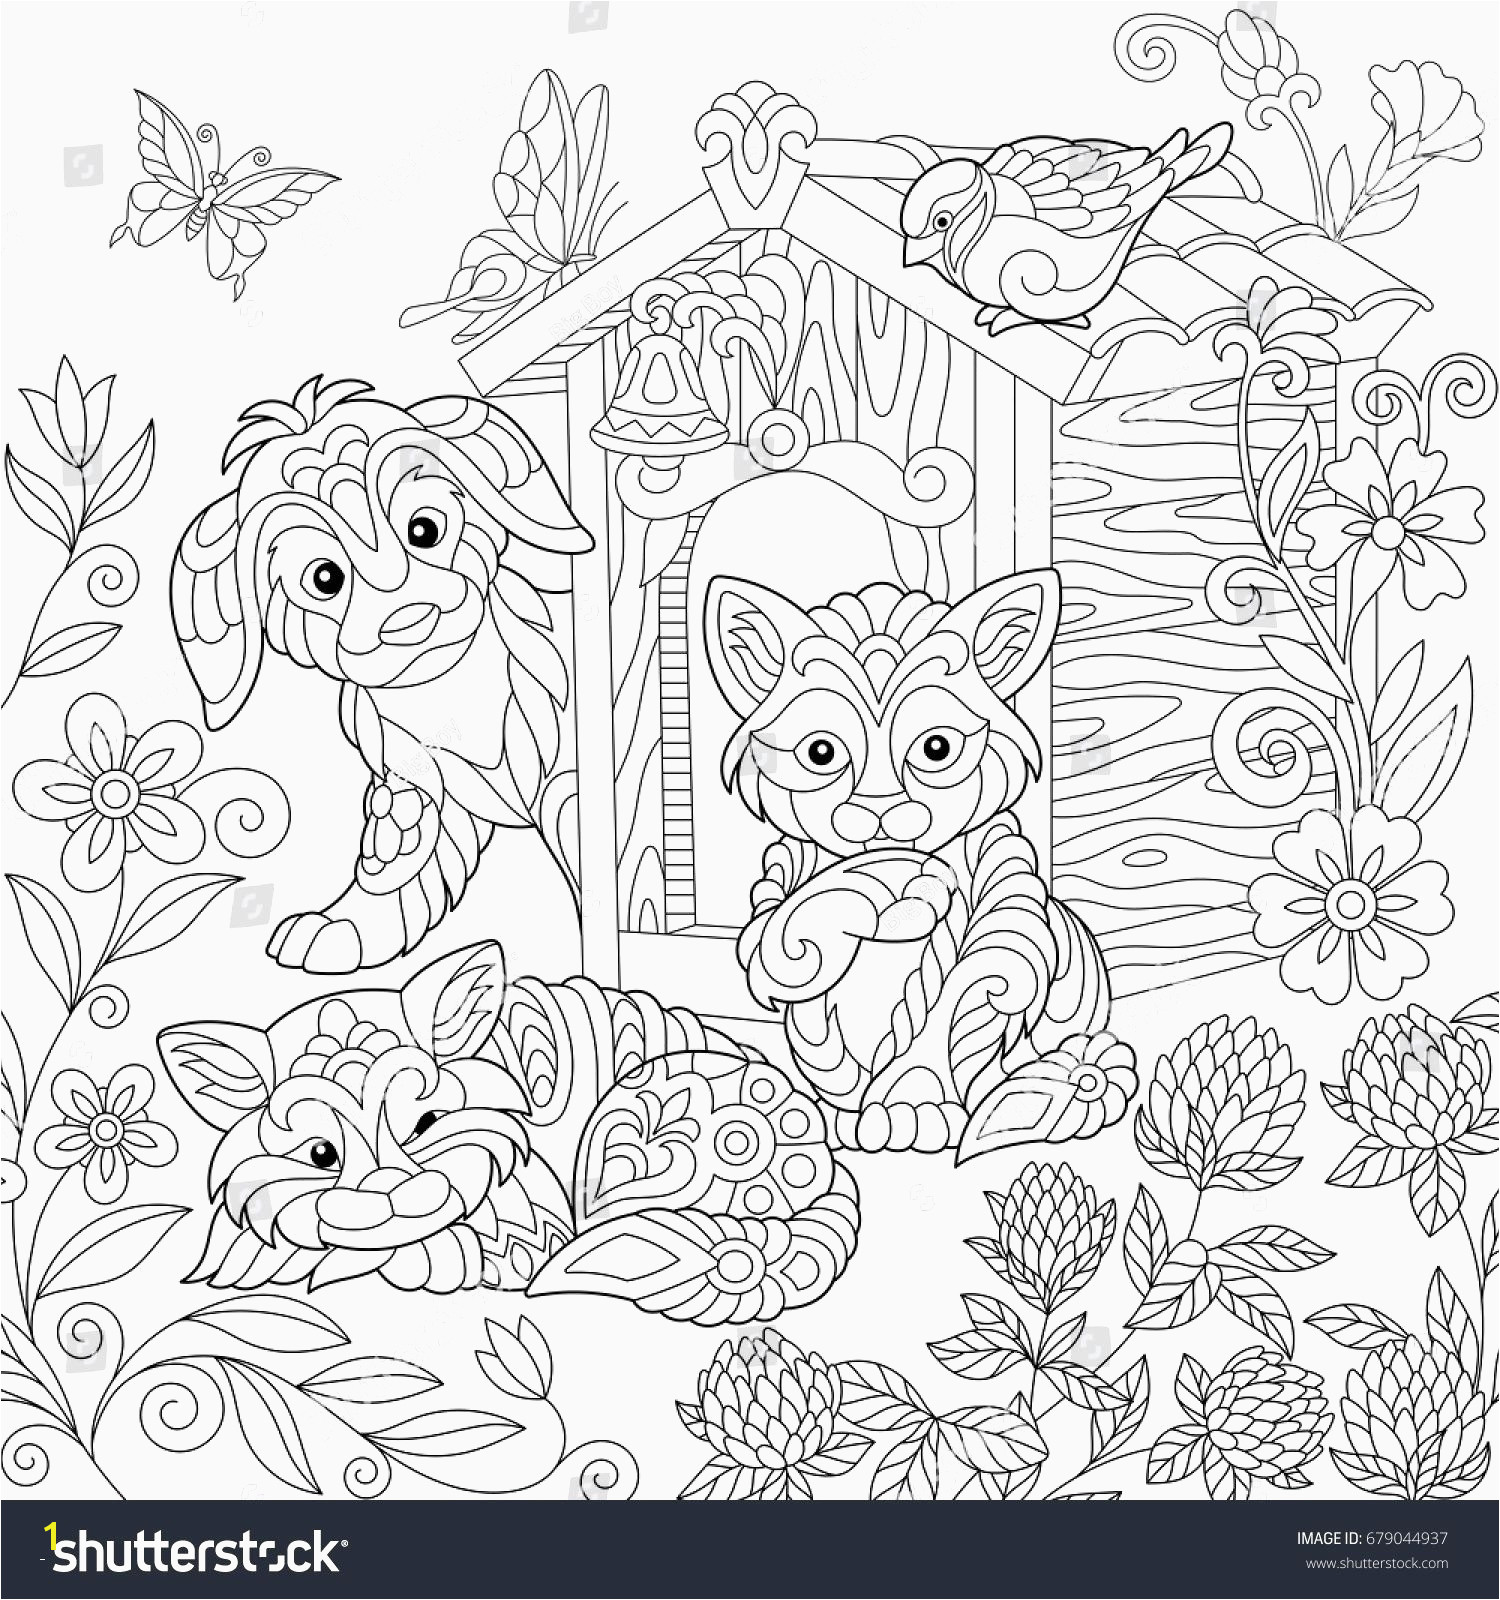 Halloween Coloring Pages to Print for Adults Fun Halloween Coloring Sheets Best Coloring Page Adult Od Kids